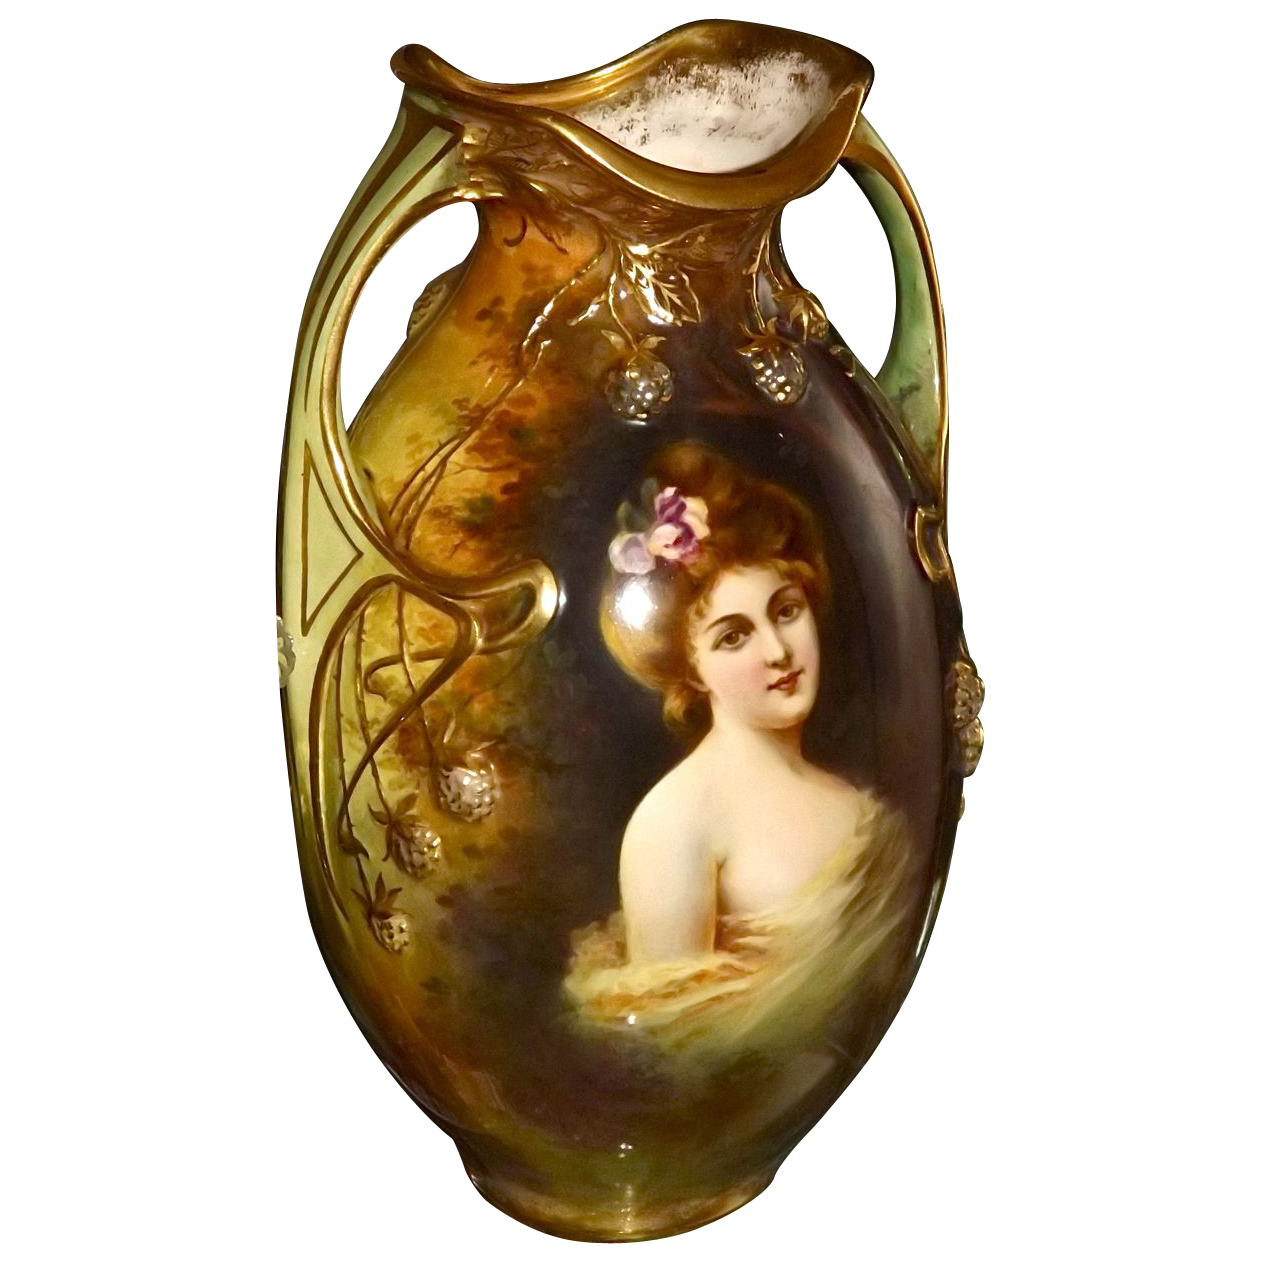 Stunning Large Royal Bonn Portrait And Scenic Vase From